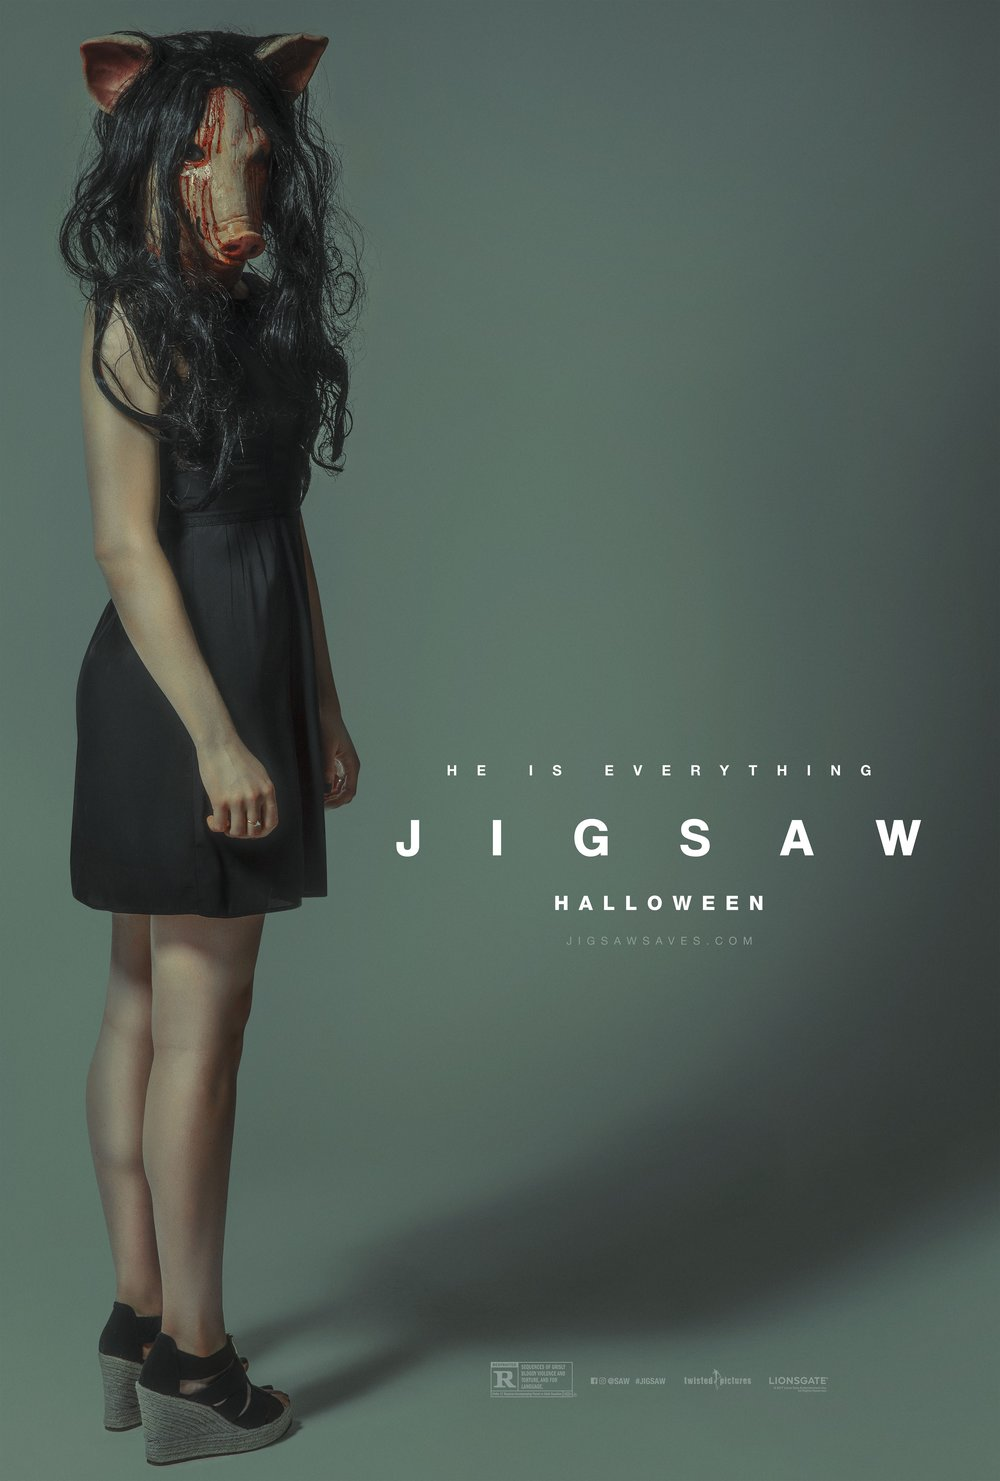 Jigsaw: He is Everything